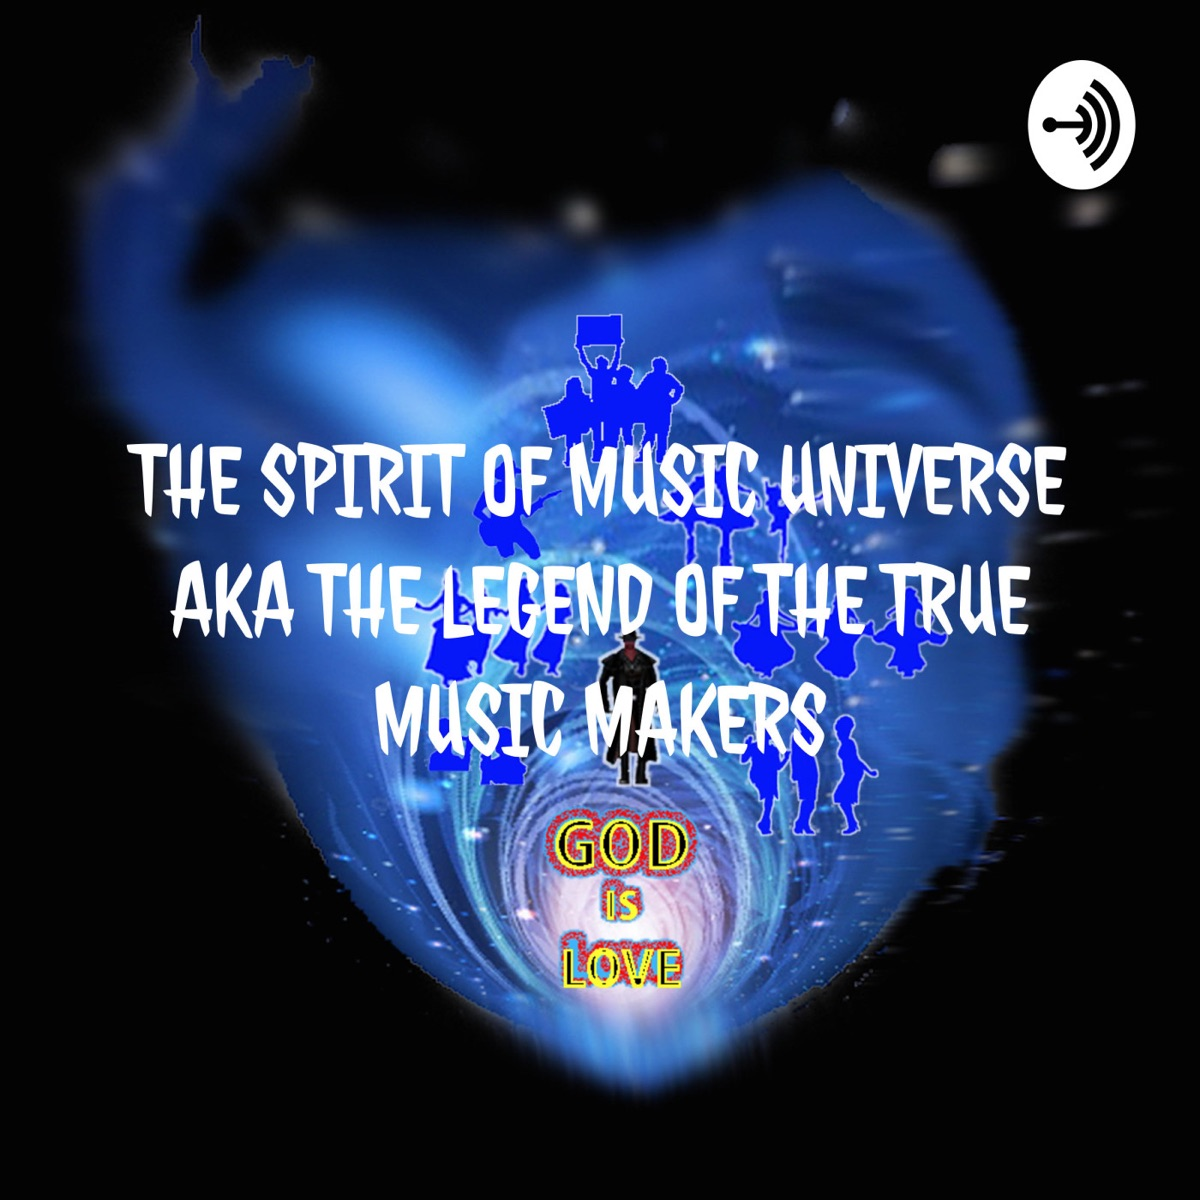 THE SPIRIT OF MUSIC UNIVERSE AKA THE LEGEND OF THE TRUE MUSIC MAKERS